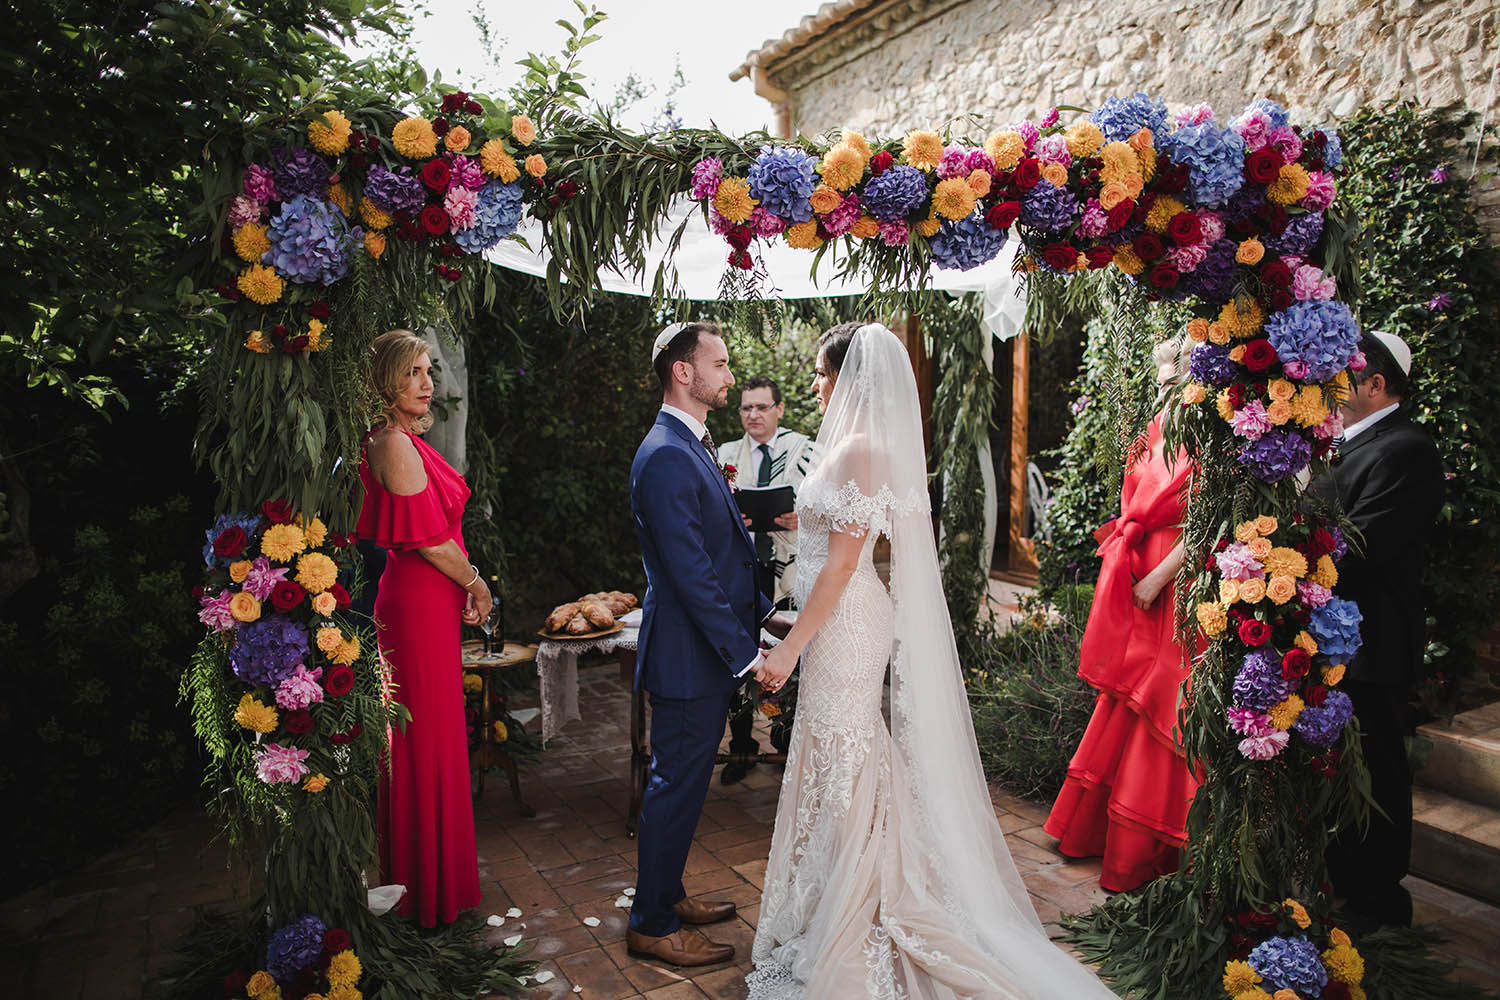 flower-arch-jewish-wedding